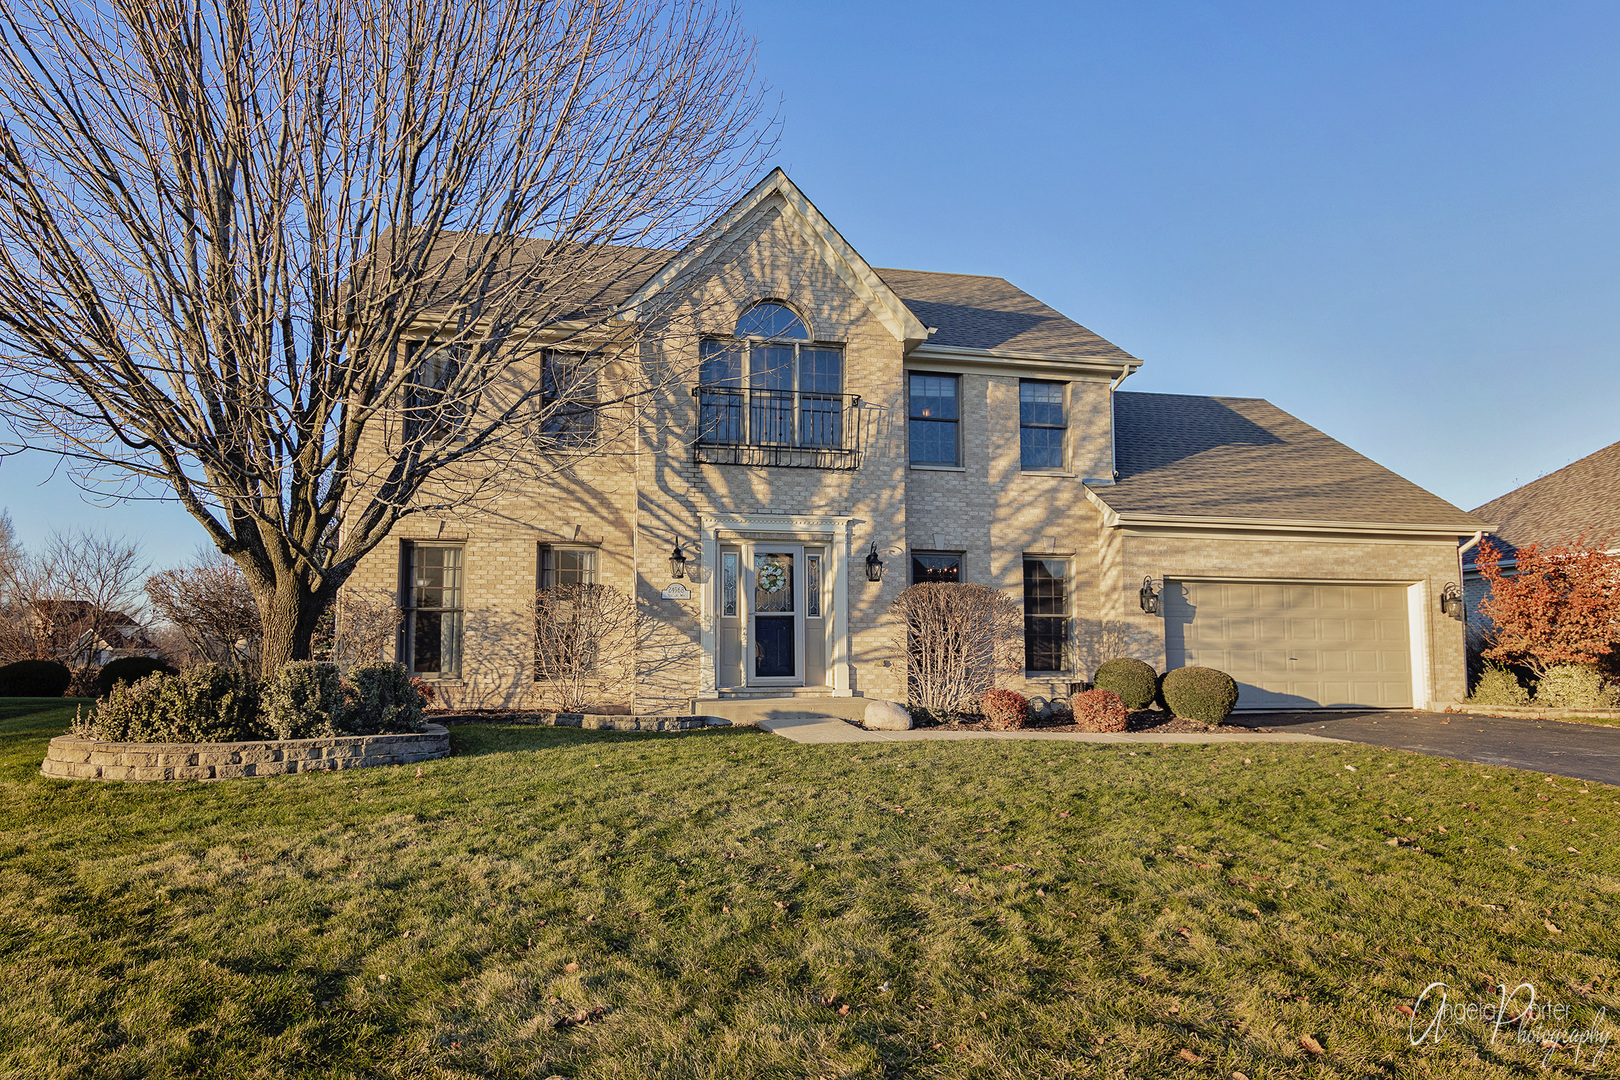 24968 West Nicklaus Way, Antioch, Illinois